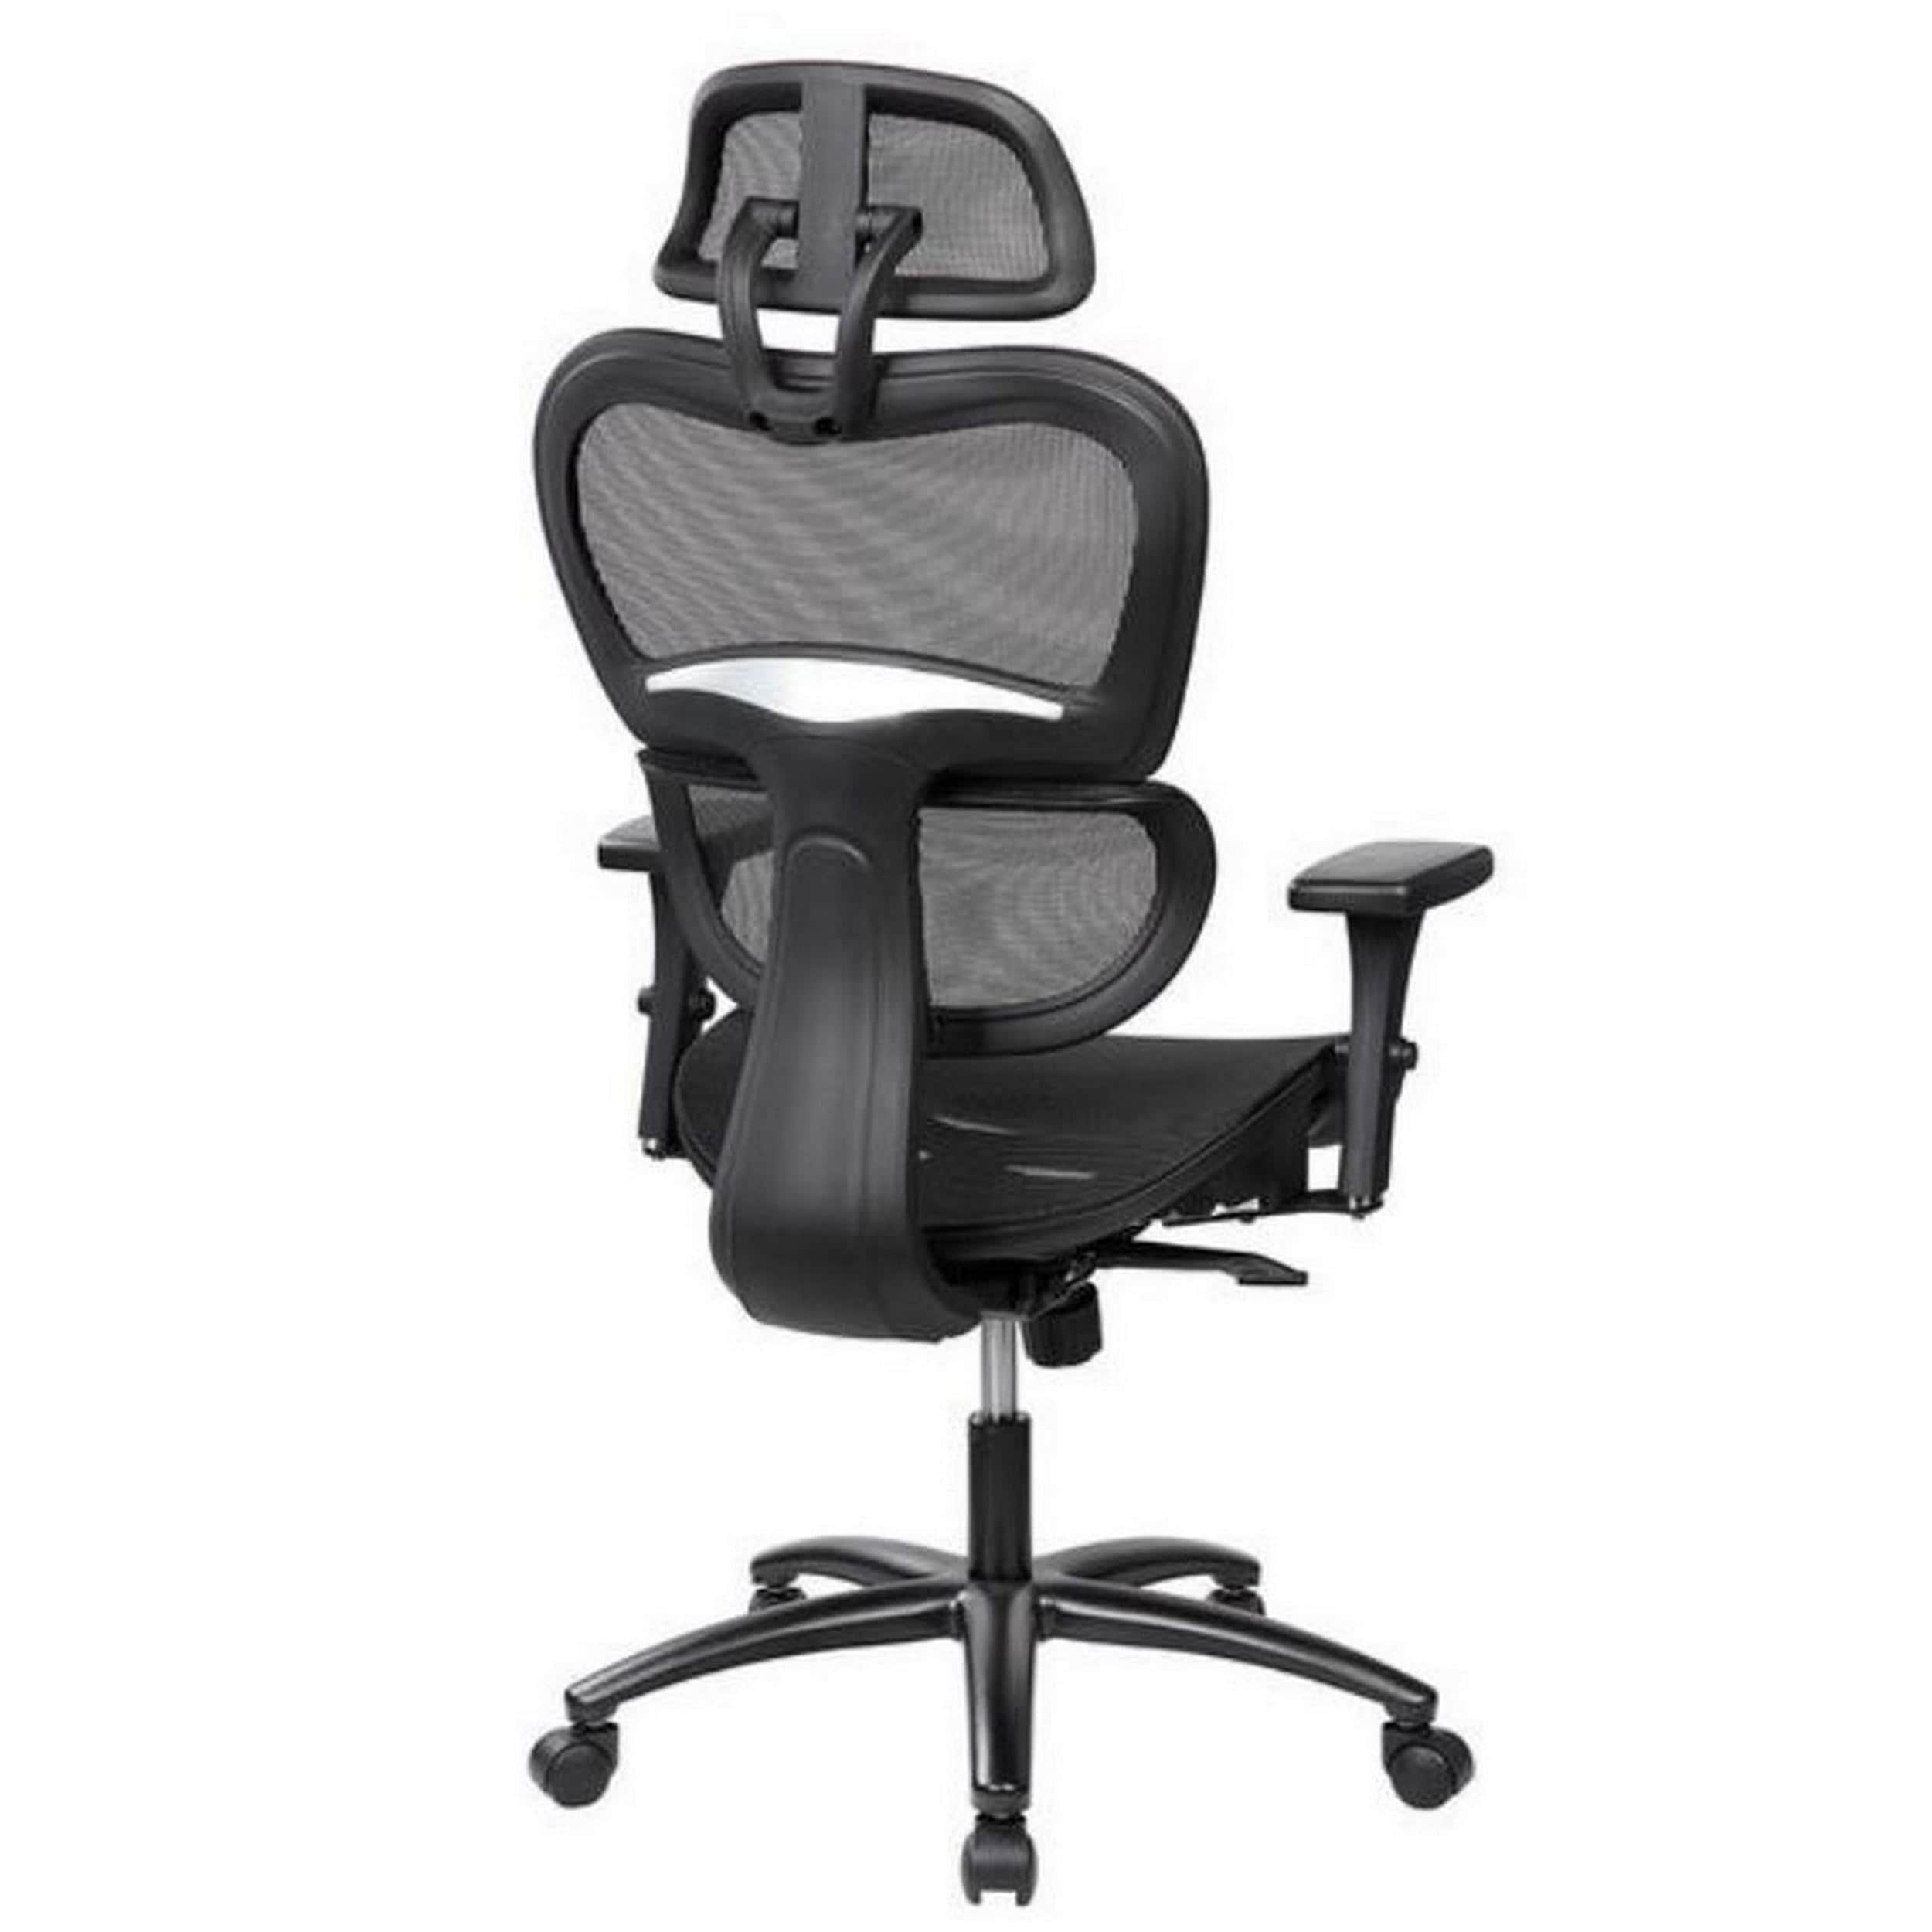 Shop Urban Designs High Back Mesh Office Executive Chair With Neck Support On Sale Overstock 20566381